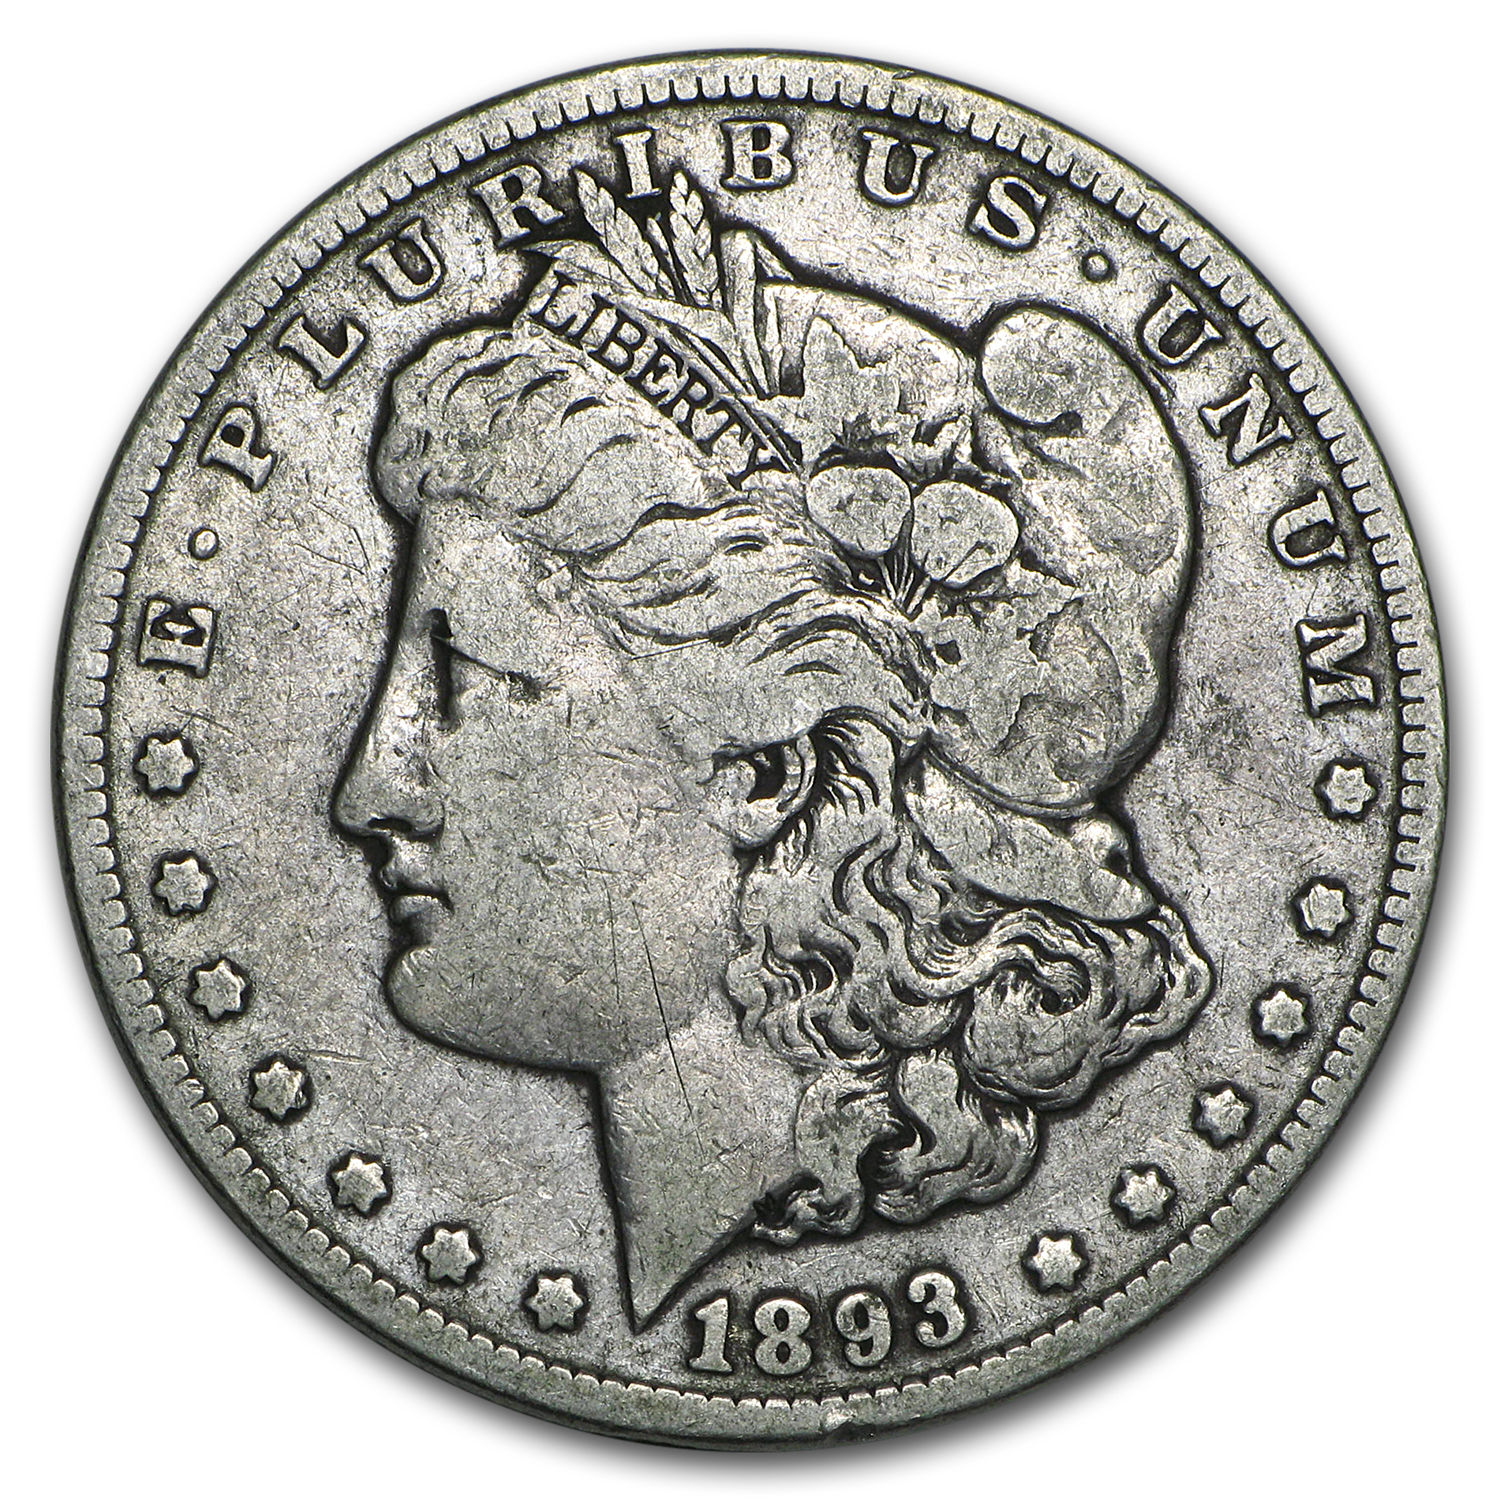 1893 Morgan Dollar - Very Good